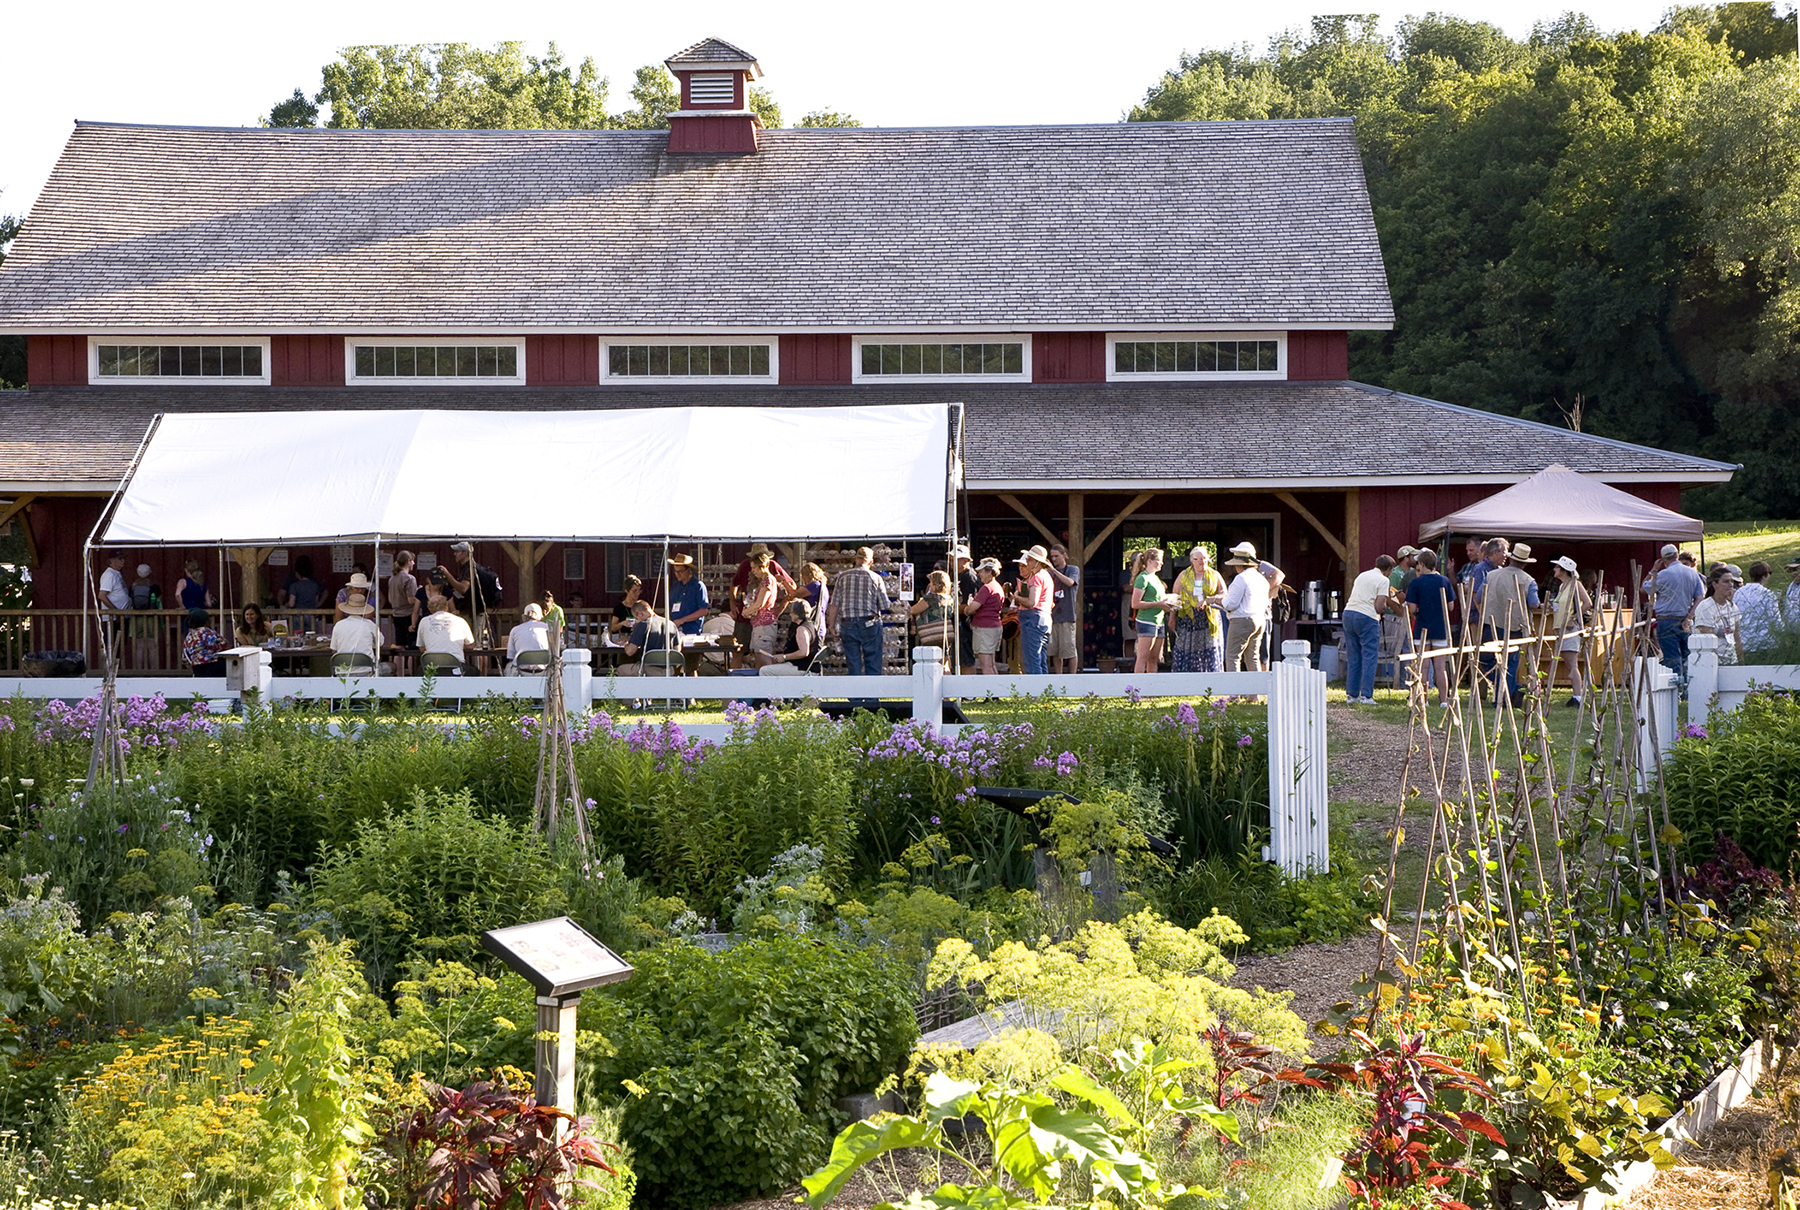 The annual Conference & Campout will be hosted by Seed Savers Exchange July 15-17, 2016.